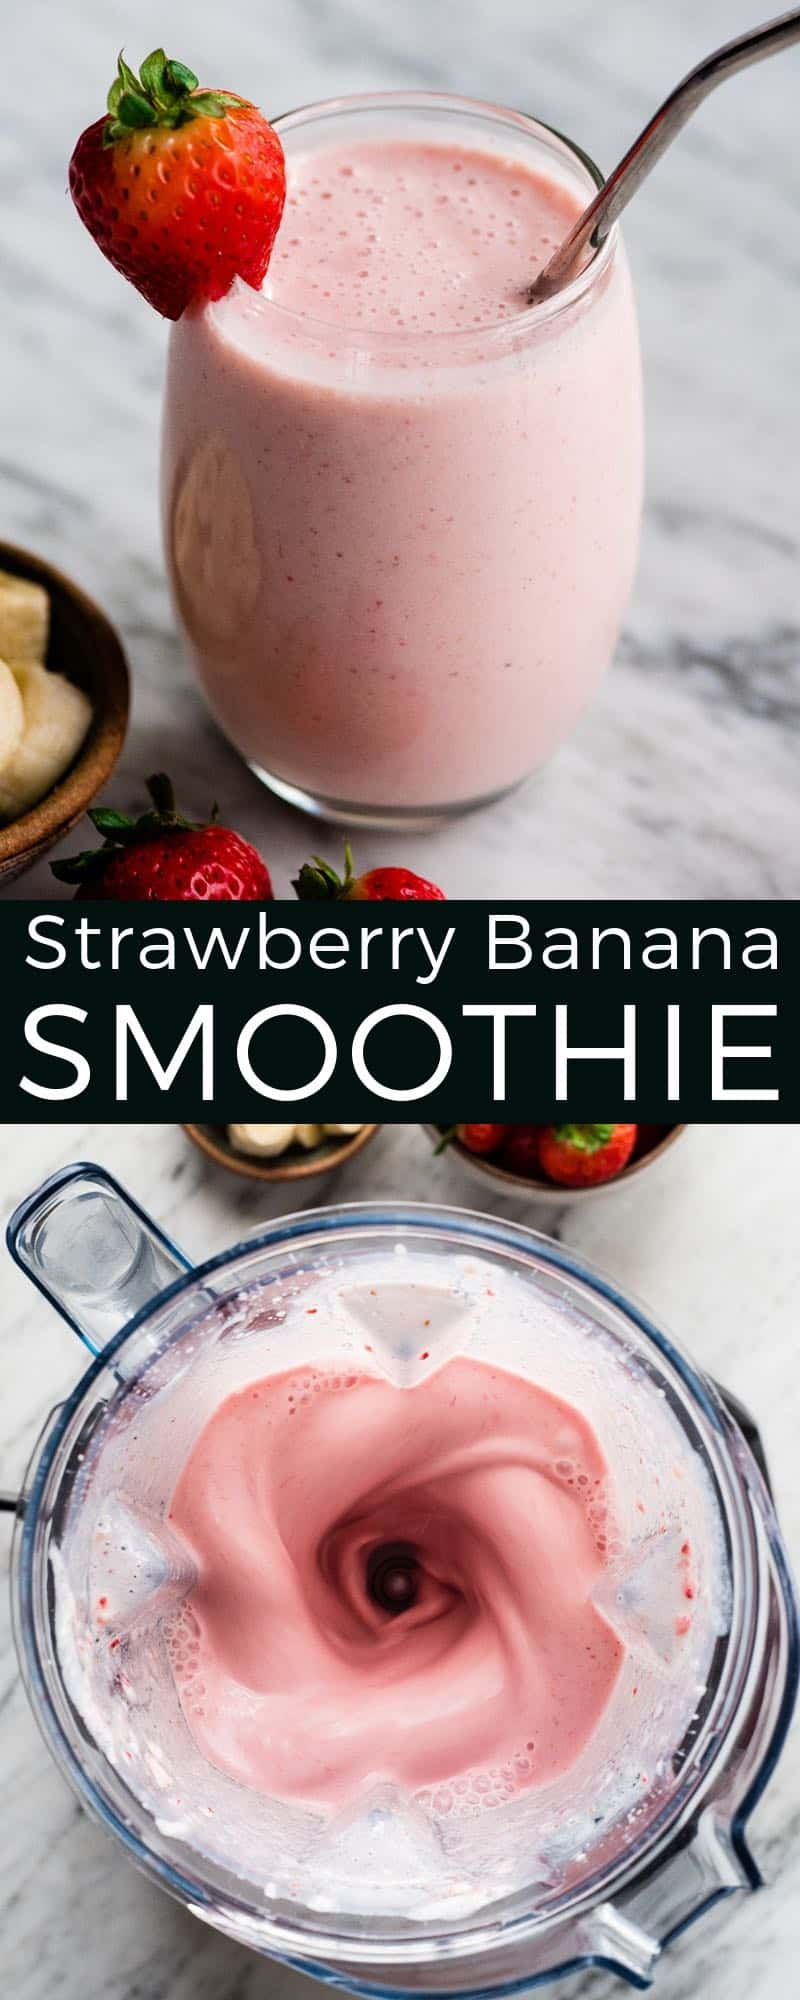 The BEST strawberry banana smoothie recipe ever! It's easy (ready in less than 5 minutes), healthy, and made with yogurt so it's full of protein!  It's the perfect snack or breakfast! #smoothie #strawberrybananasmoothie #strawberry #banana #breakfast #snack #vitamix